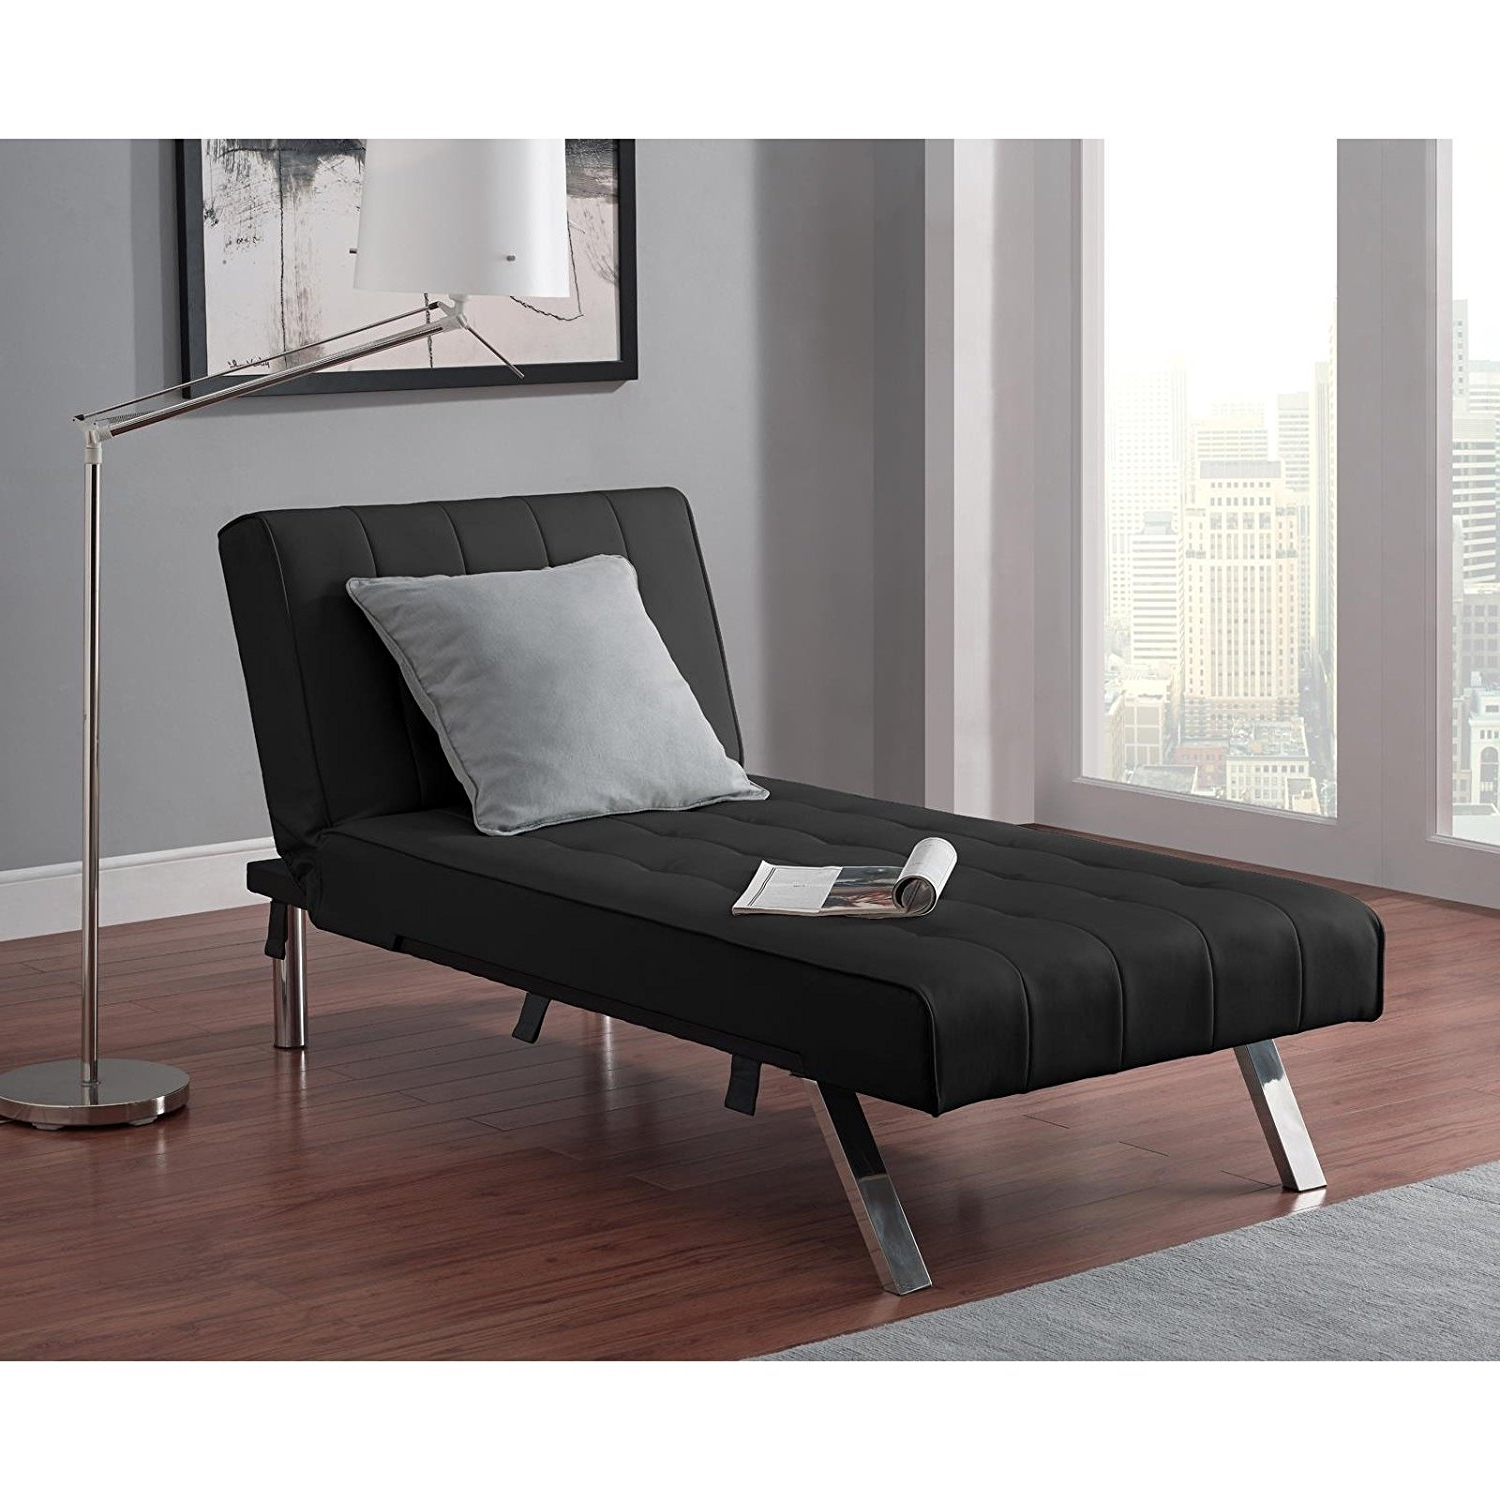 Emily Chaise Lounges In Well Known Amazon: Emily Futon With Chaise Lounger Super Bonus Set Black (View 5 of 15)